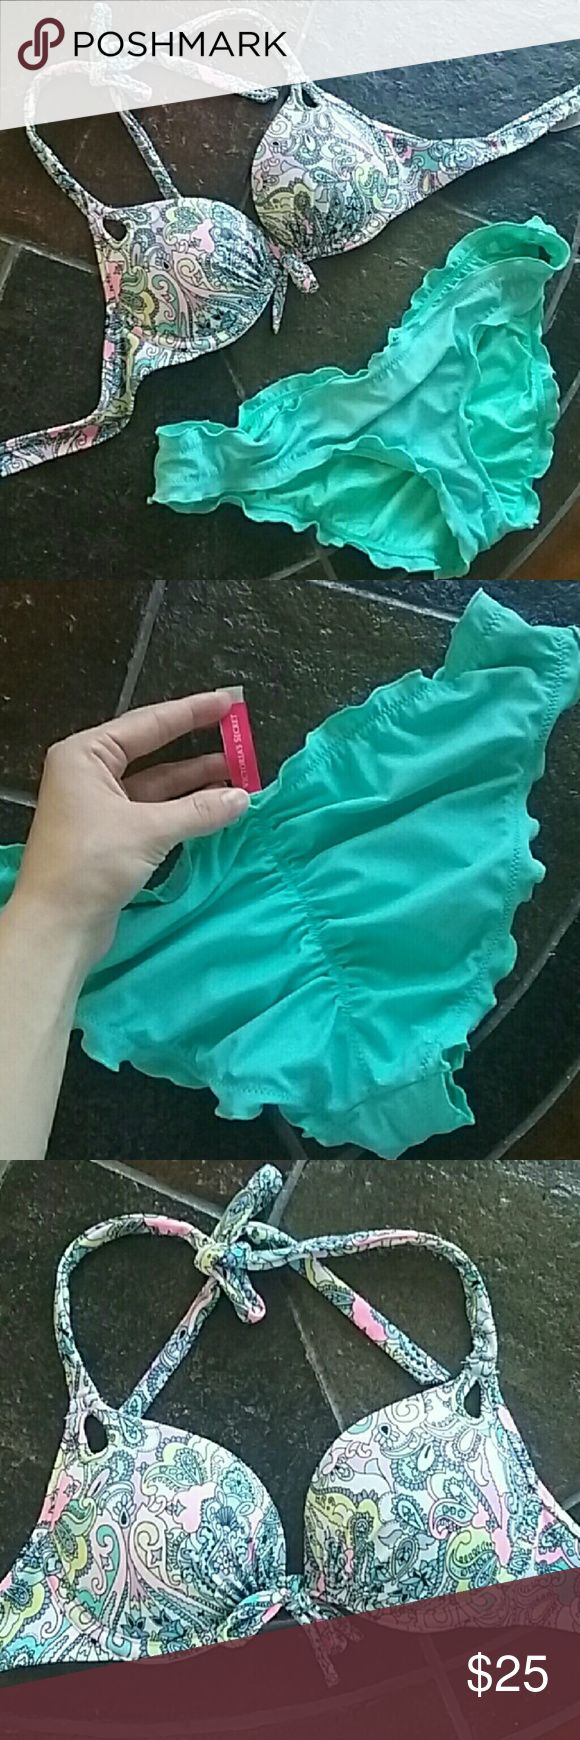 Victoria's Secret bathing suit set! The top is a 32A with bombshell padding and the ruffle cheeky bottoms are a size small. I purchased this from poshmark and it did not fit I never wore it but it is used. Victoria's Secret Swim Bikinis